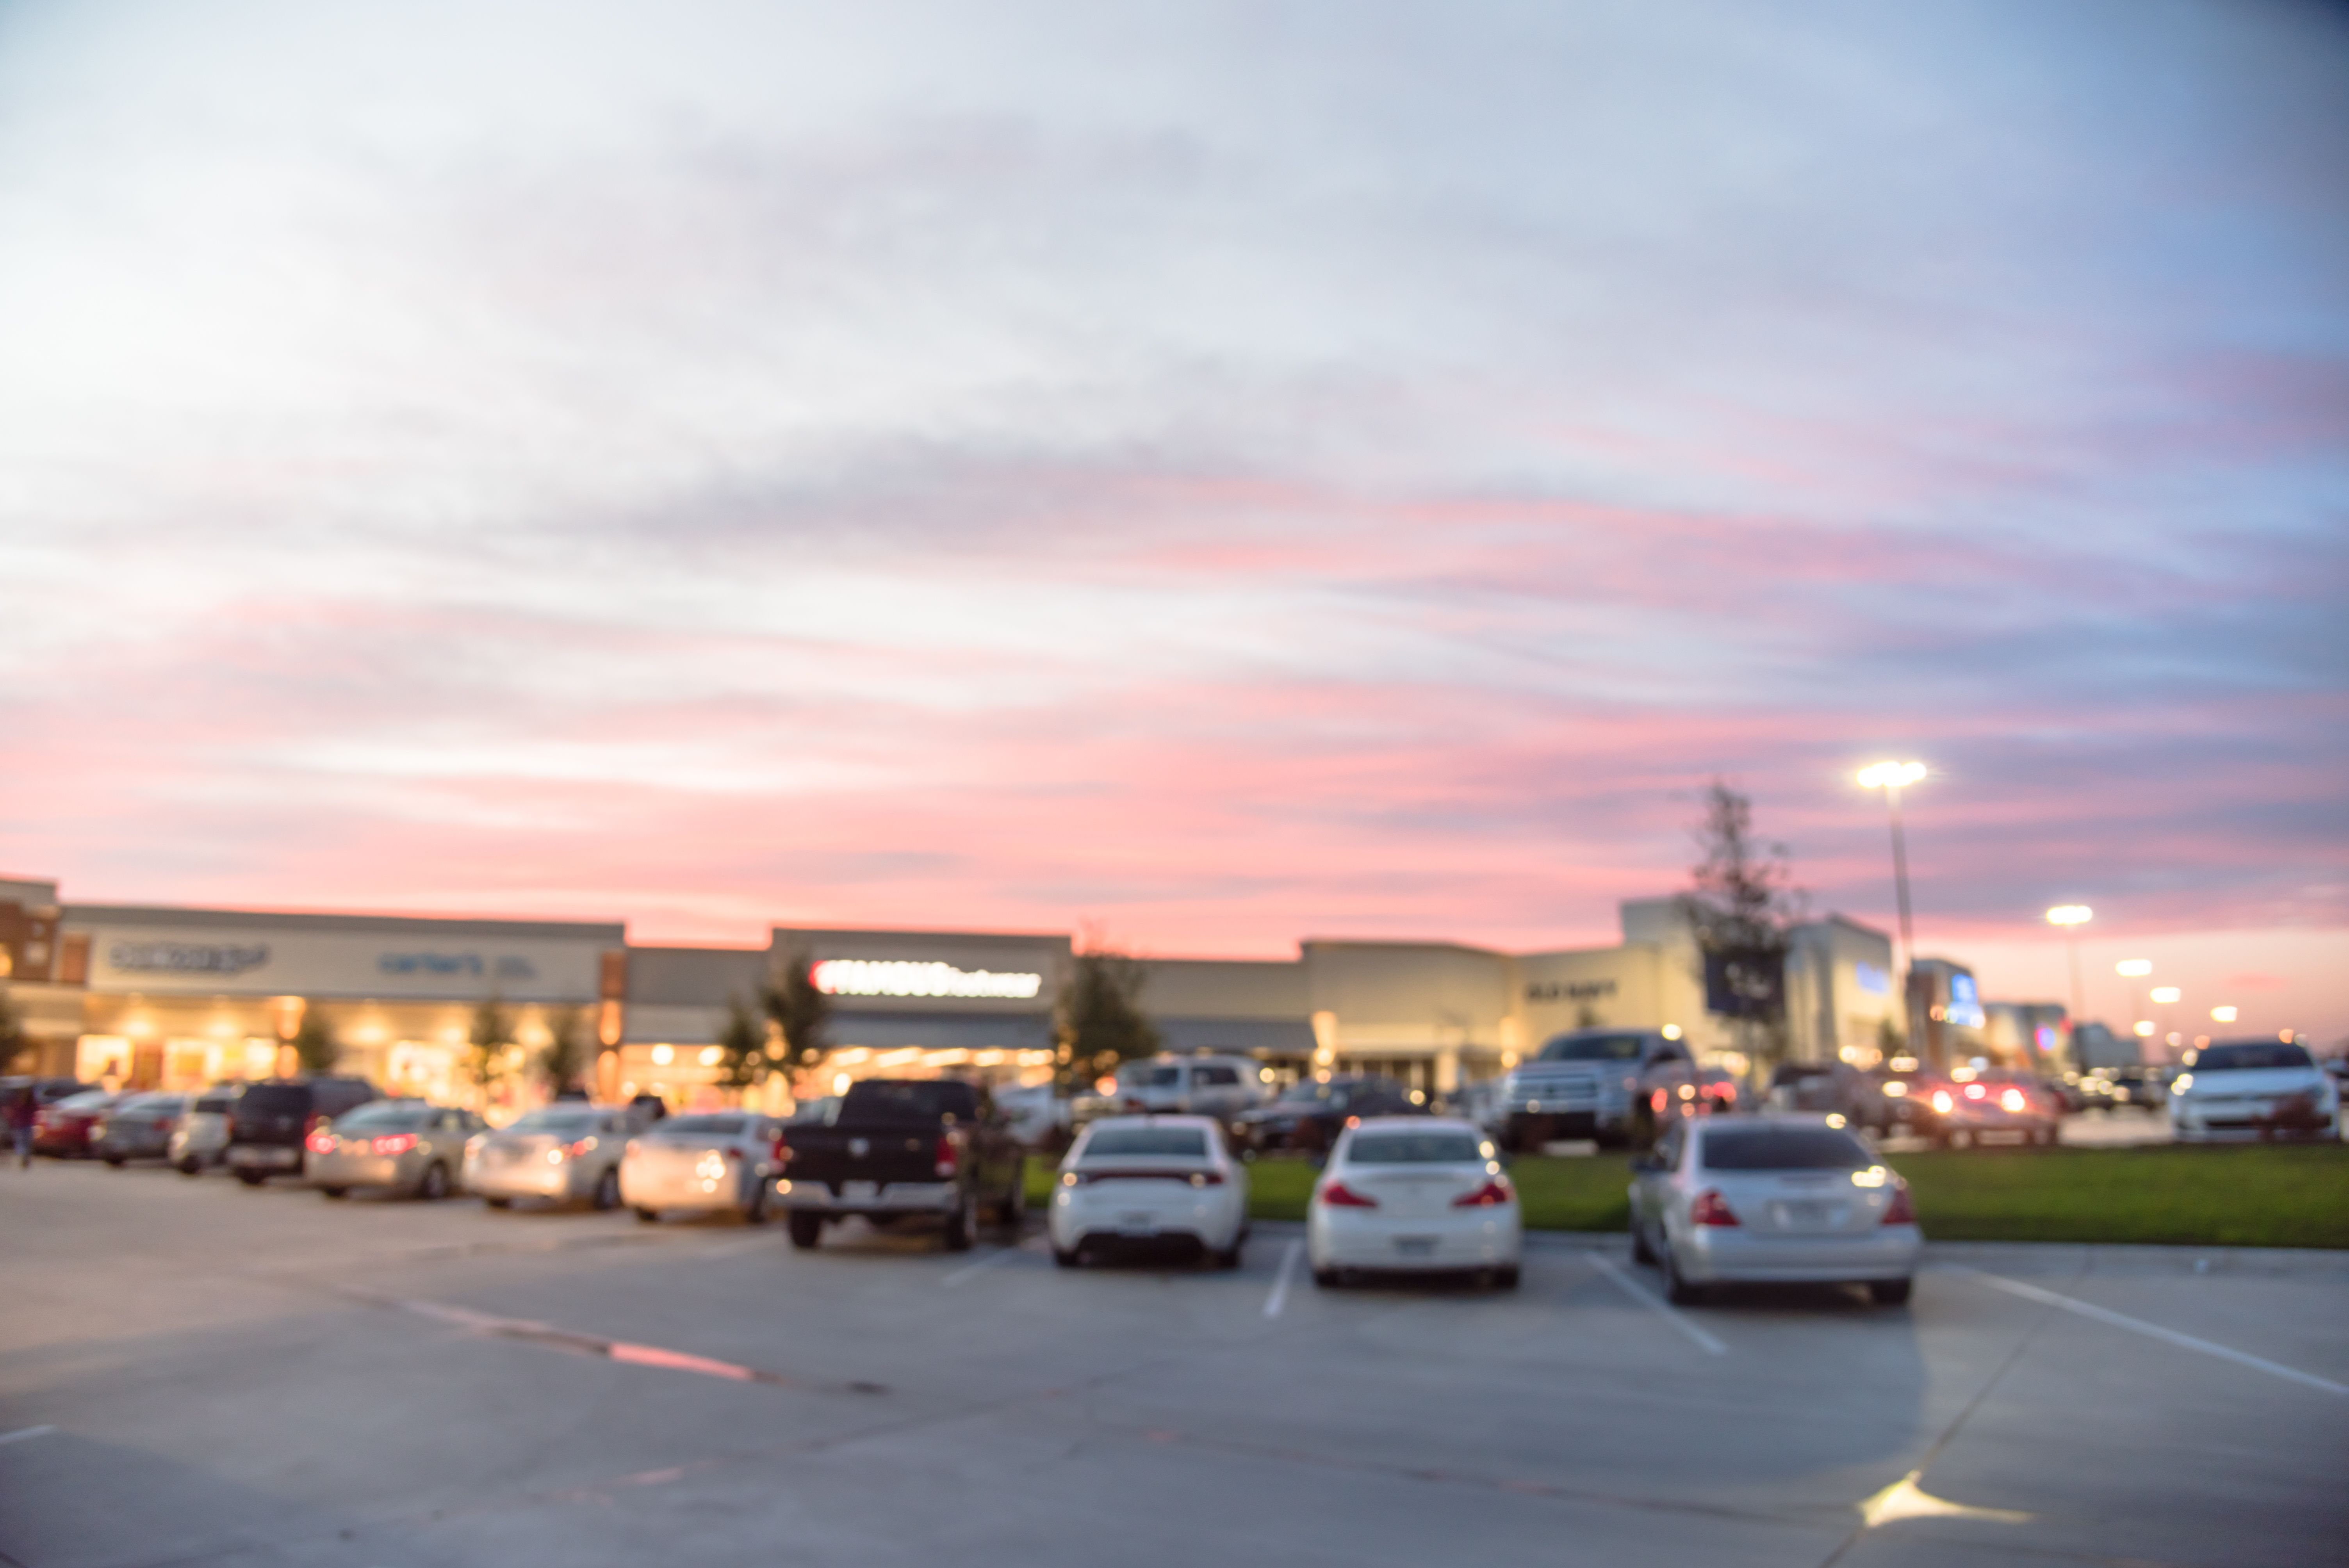 Shopping center parking lot at dusk